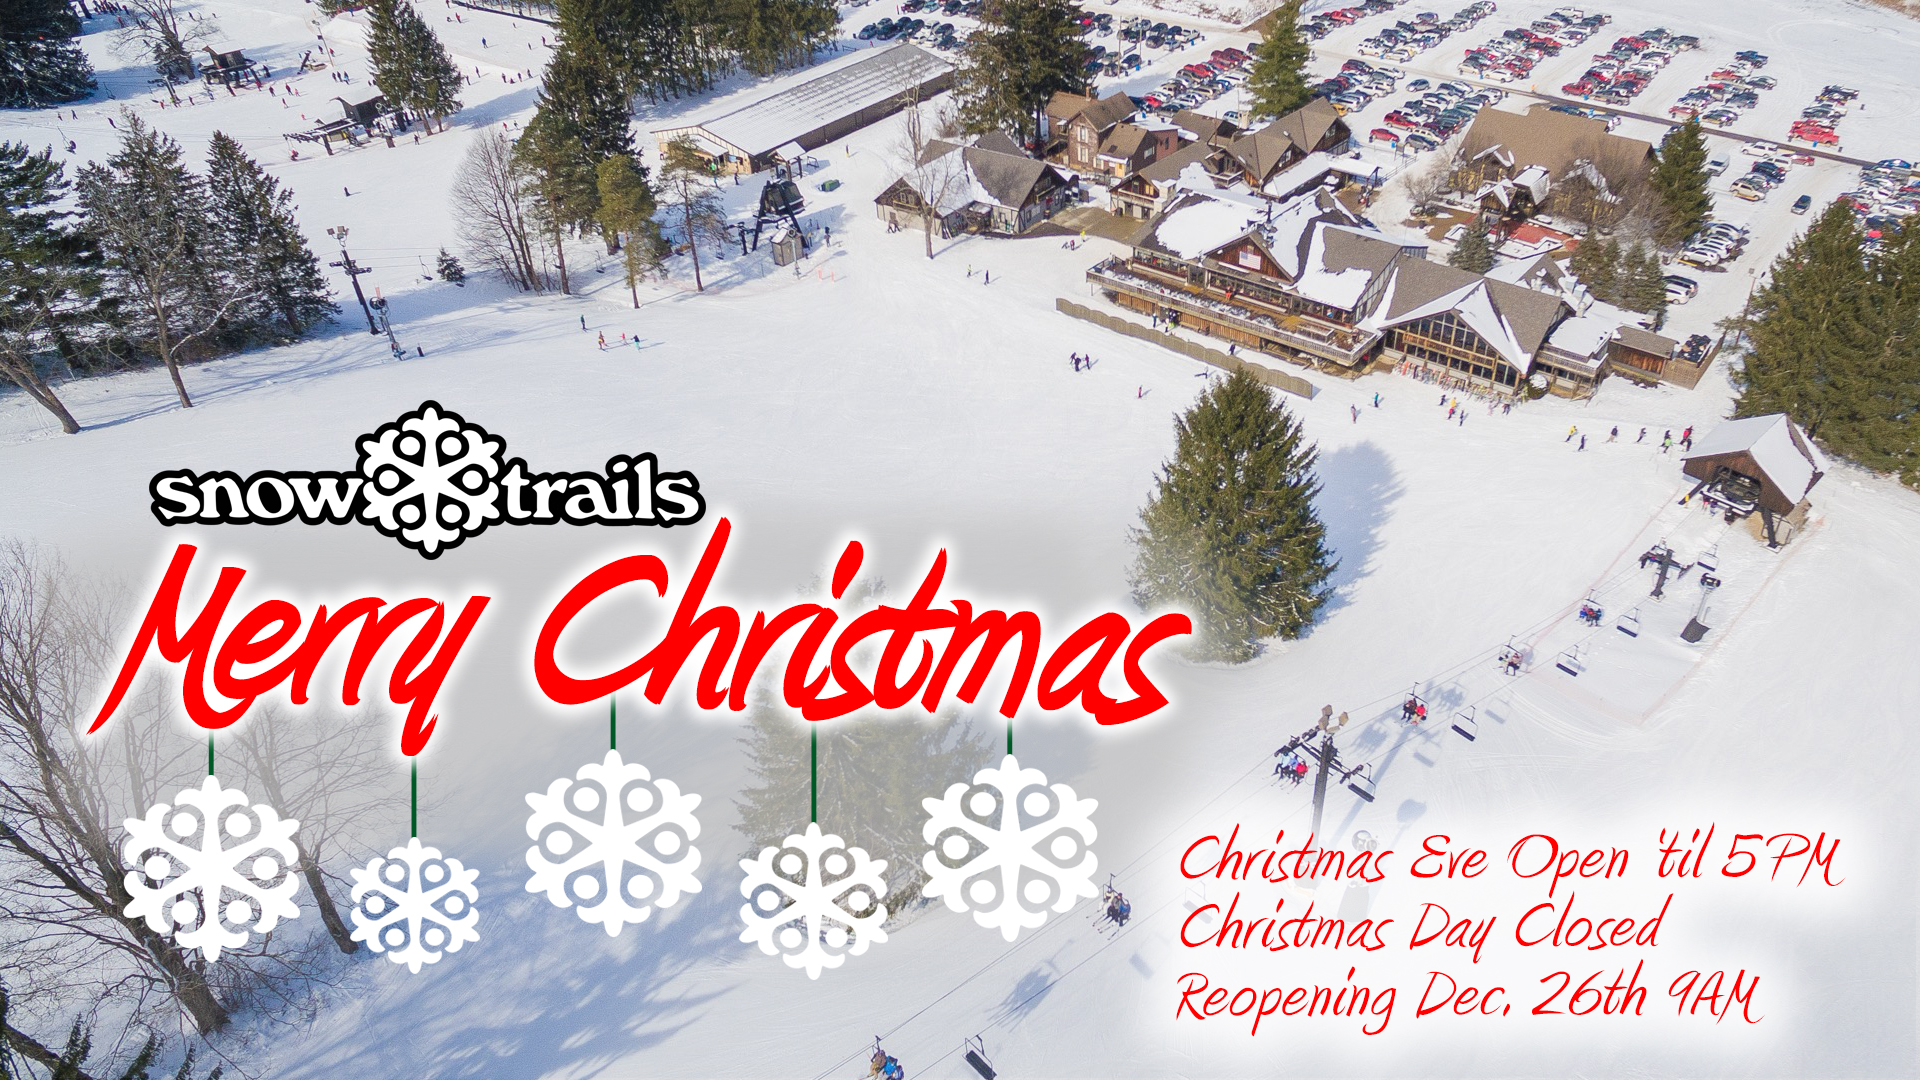 merry christmas reopening slopes tubing park dec - Merry Christmas Eve